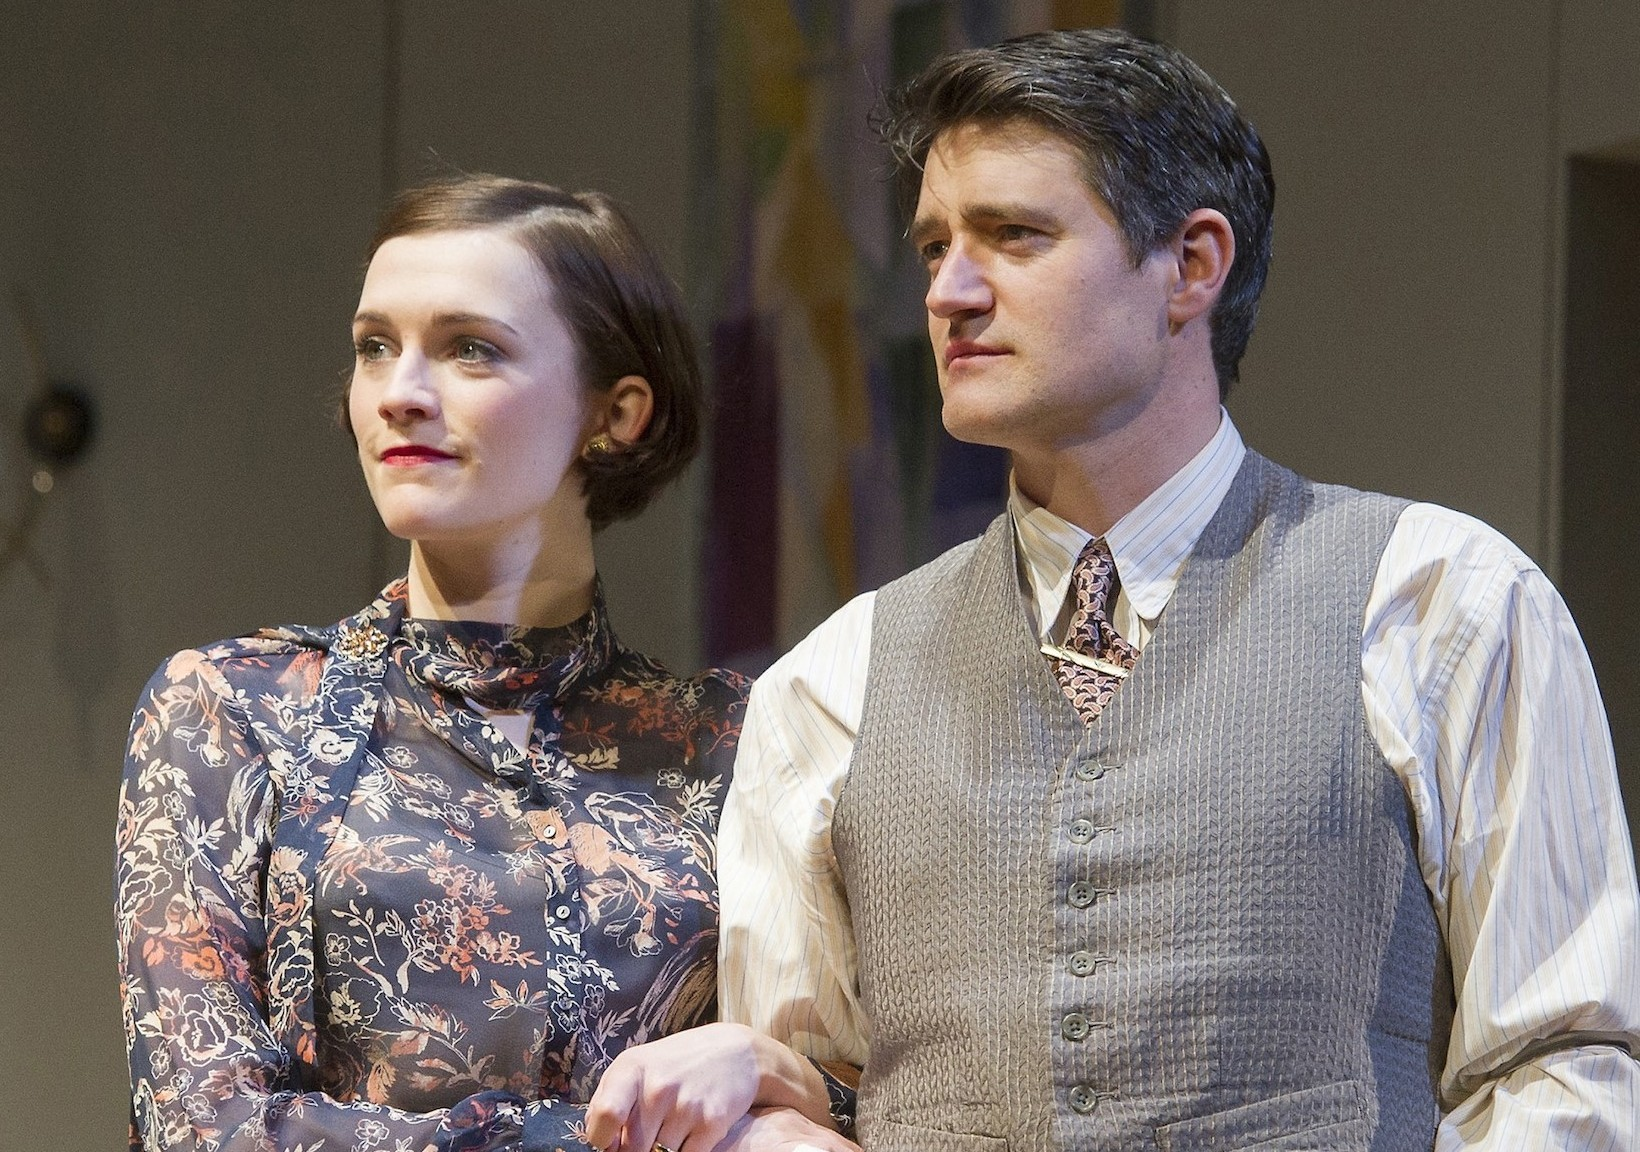 Charlotte Ritchie tours UK theatres in a play called 'Private Lives' (Alastair Muir)